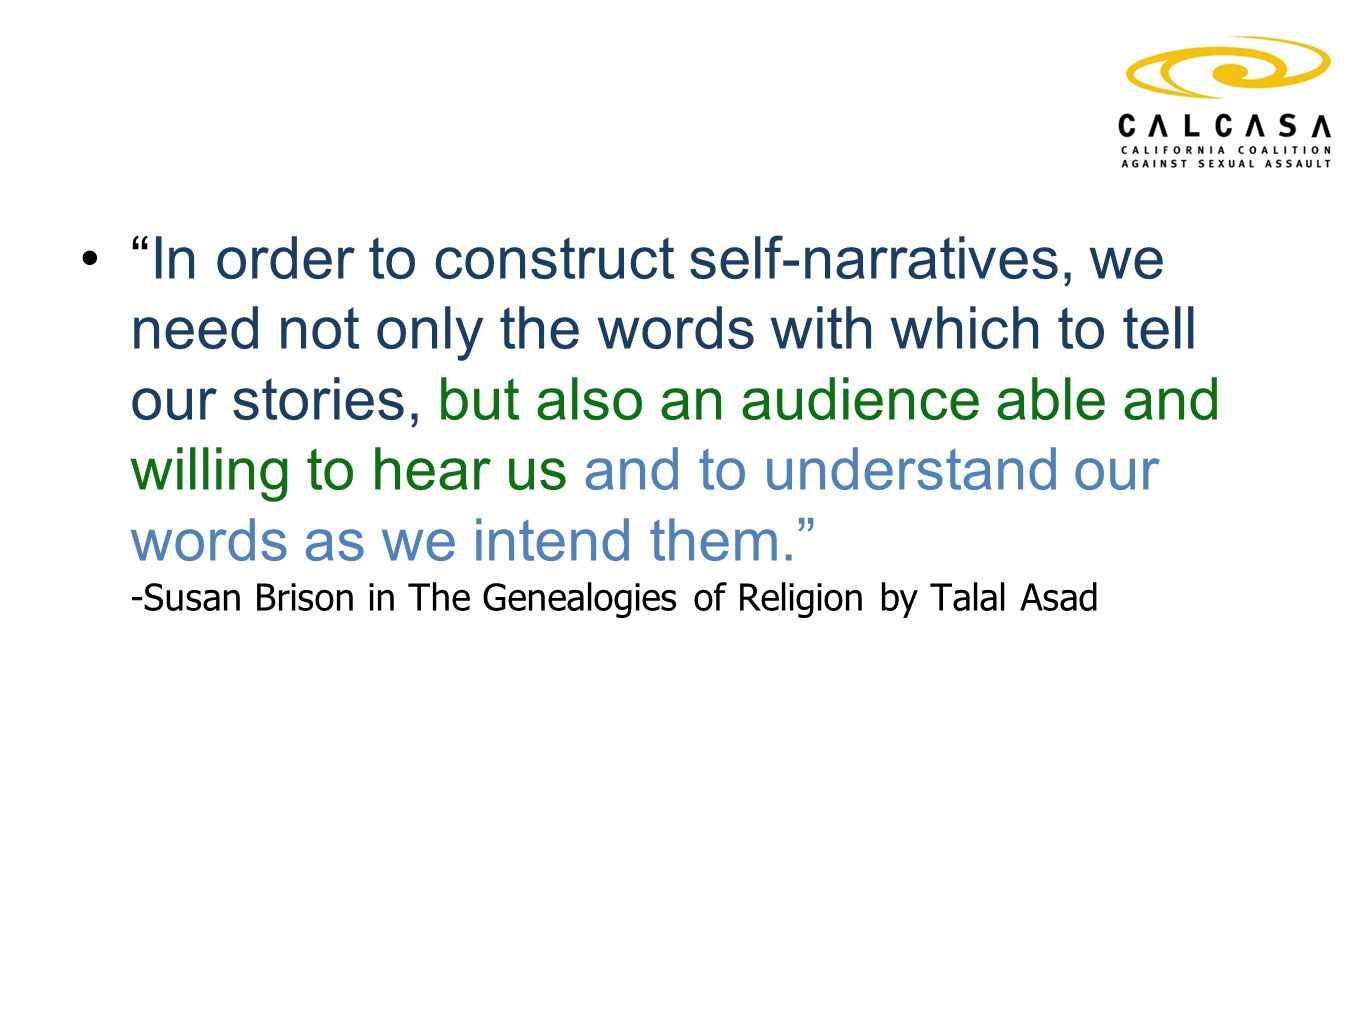 In order to construct self-narratives, we need not only the words with which to tell our stories, but also an audience able and willing to hear us and to understand our words as we intend them. -Susan Brison in The Genealogies of Religion by Talal Asad